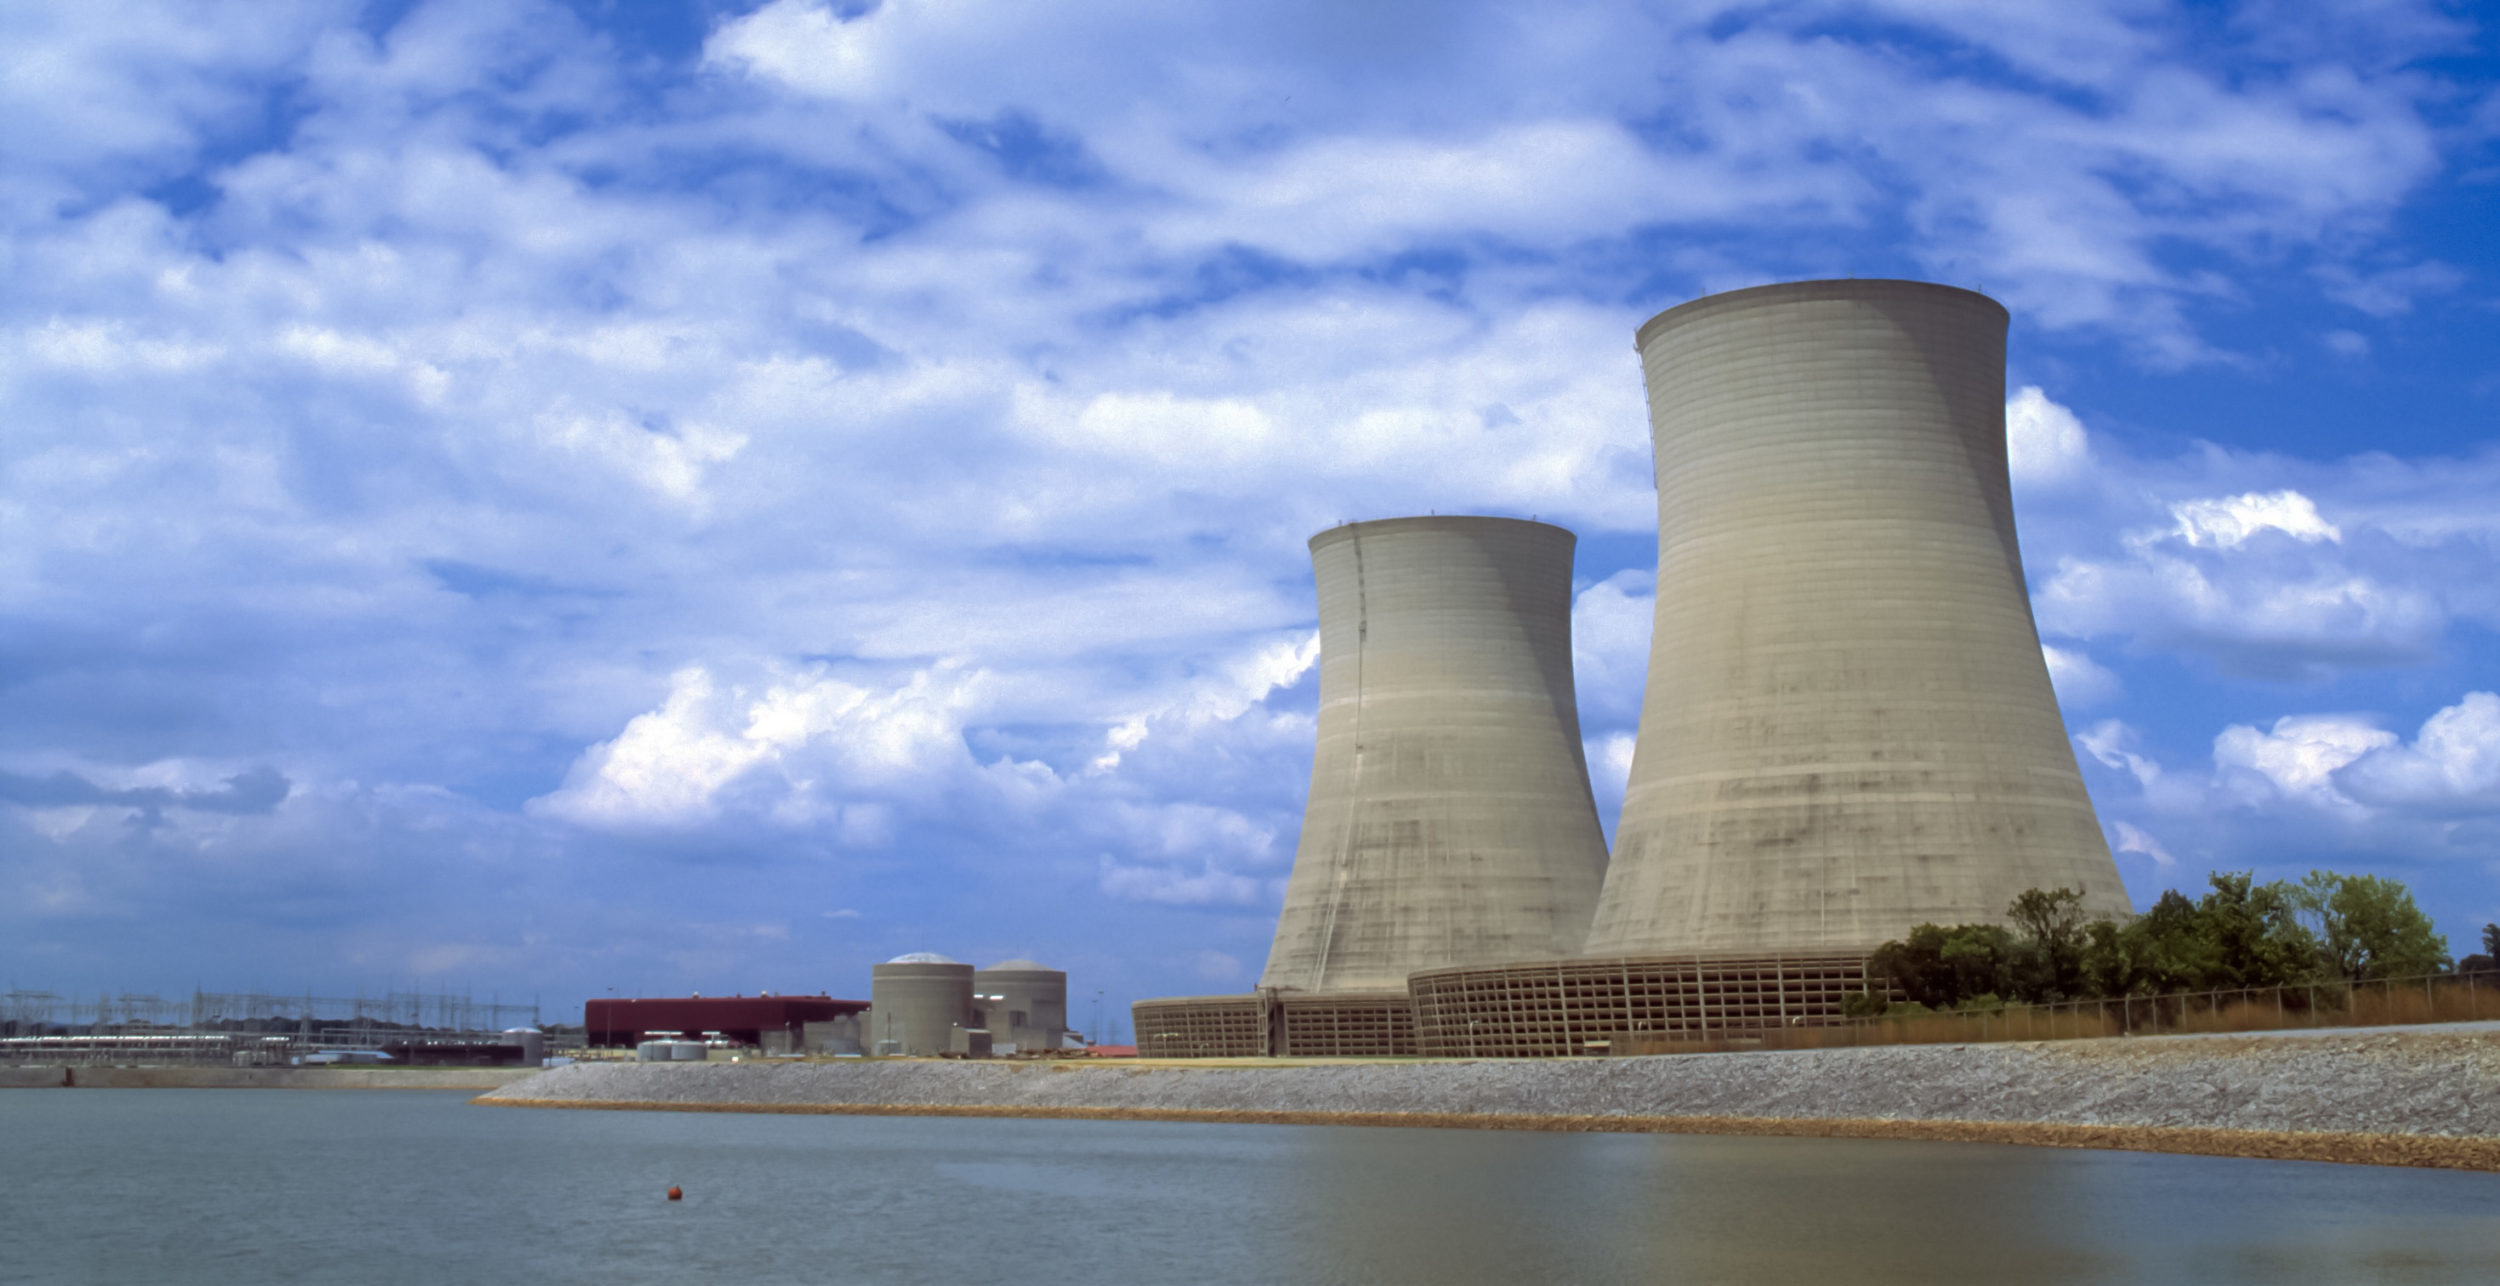 Sequoyah Nuclear Generating Station. Source: Wikimedia Commons